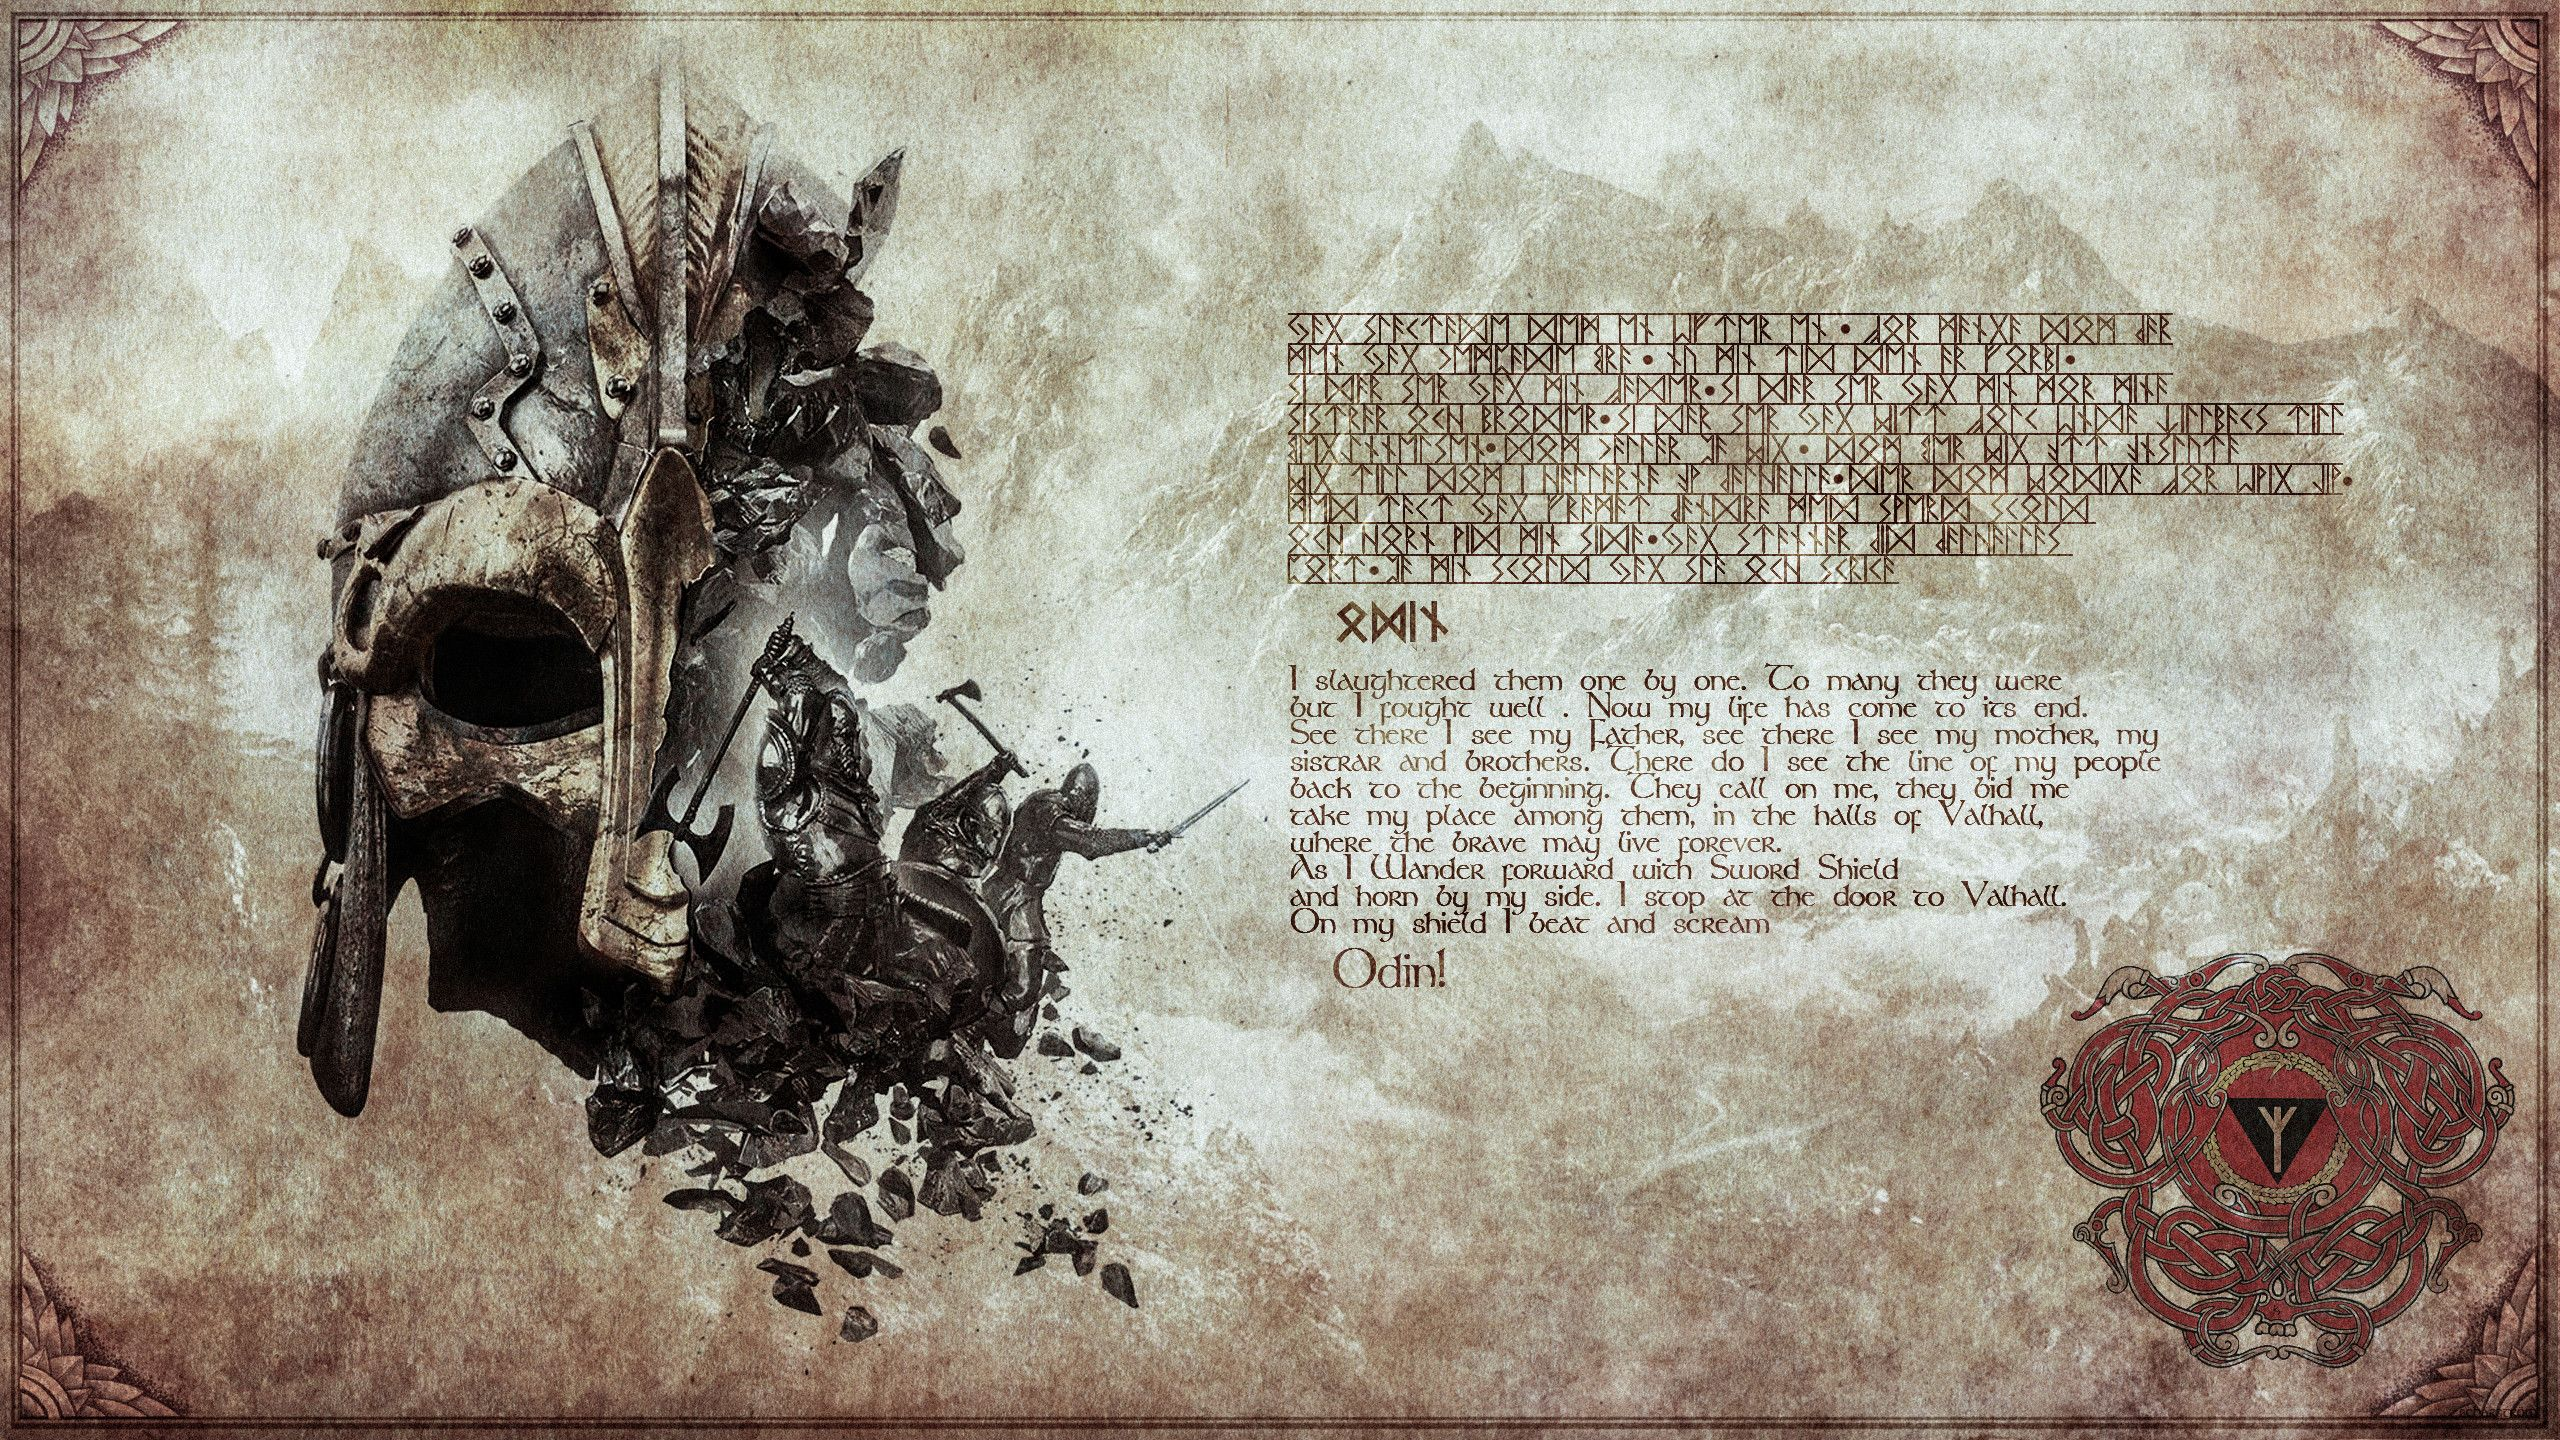 Res 2560x1440 Valhall 2560 X 1440 By Enstorsnustack Valhall 2560 X 1440 By Enstorsnustack Viking Runes Viking Wallpaper Vikings